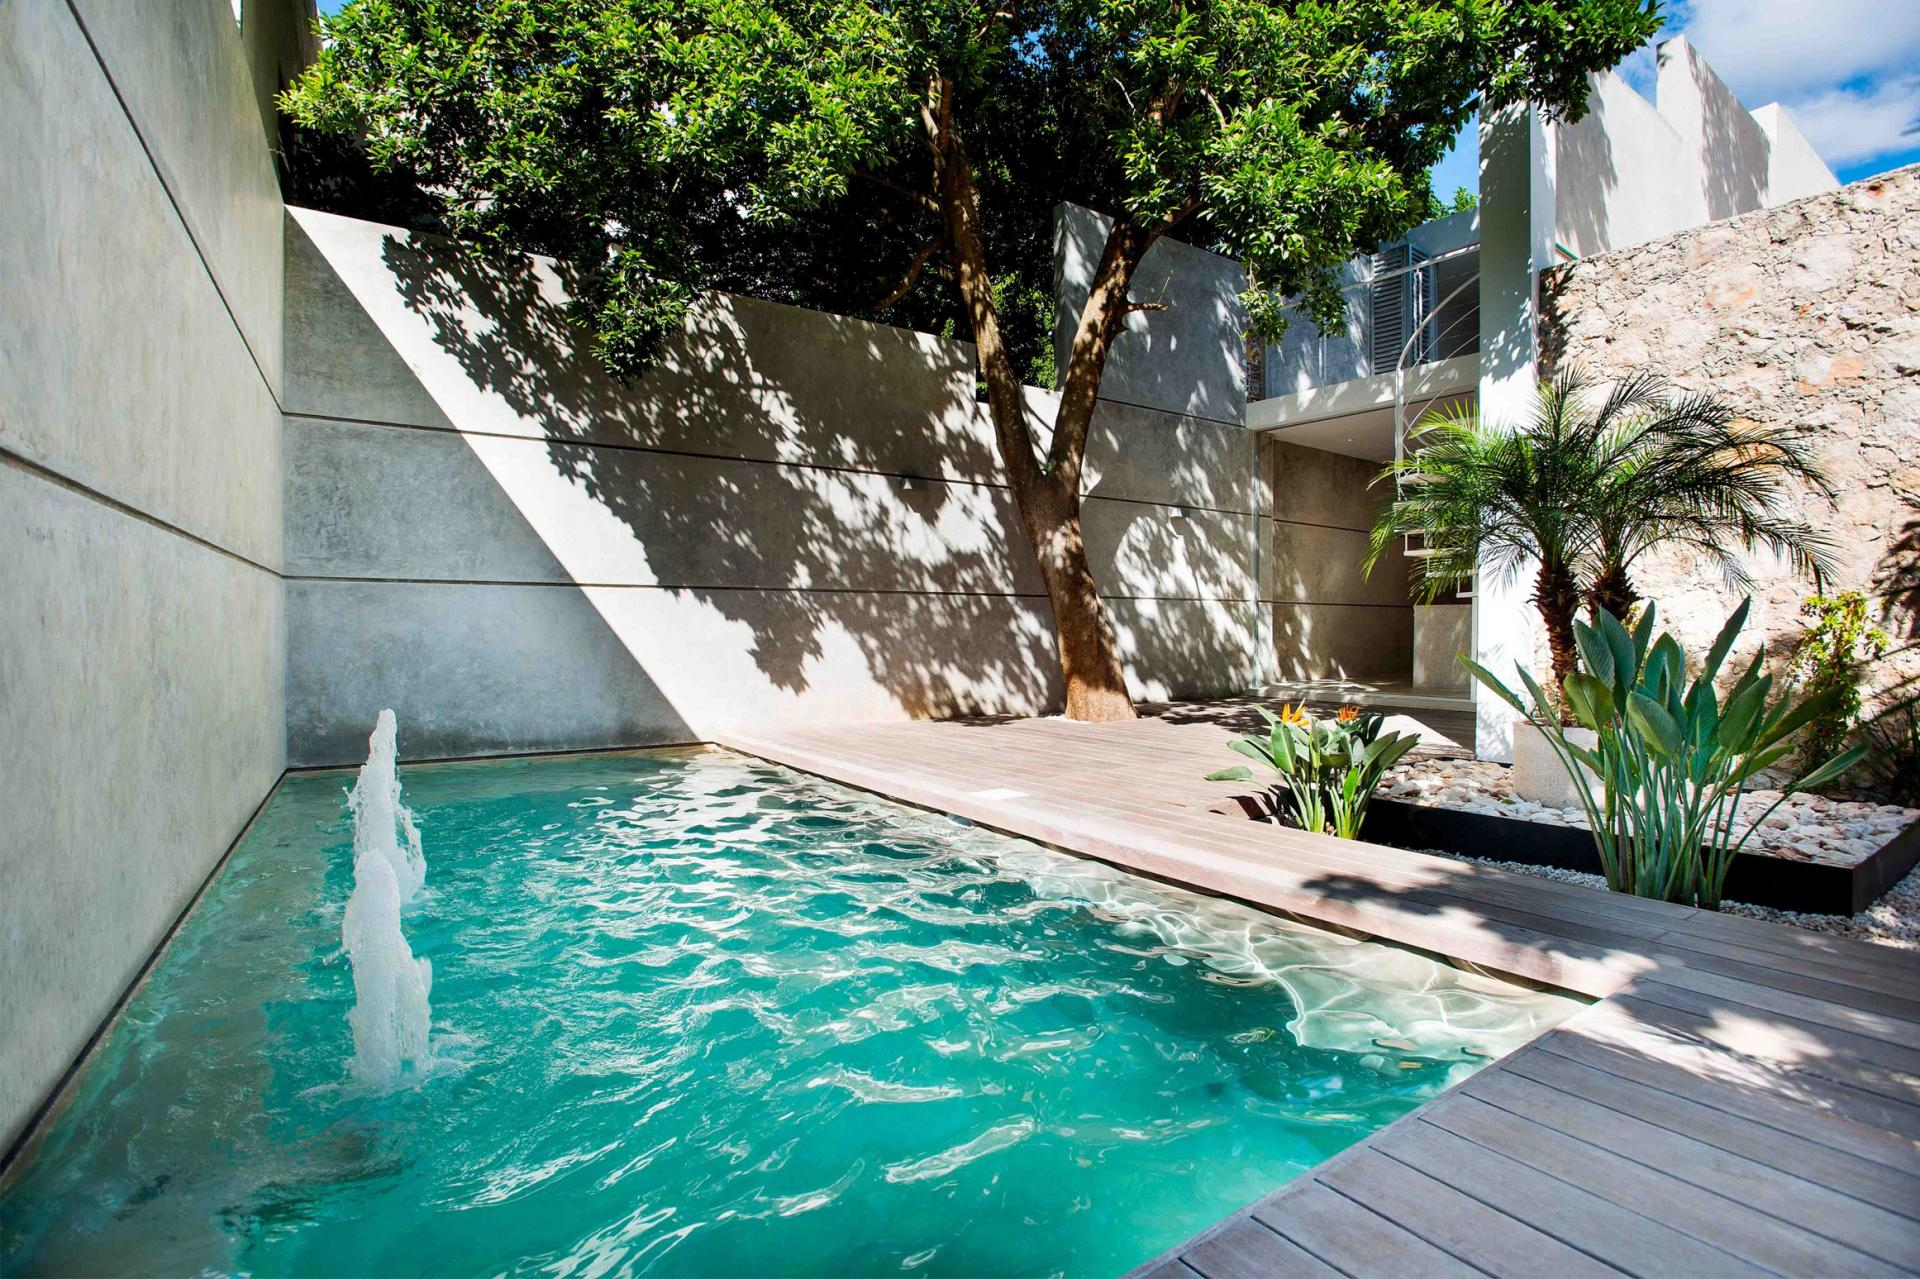 B+H 45 residence in the historic centre of the city of Merida by H. Ponce arquitectos-05